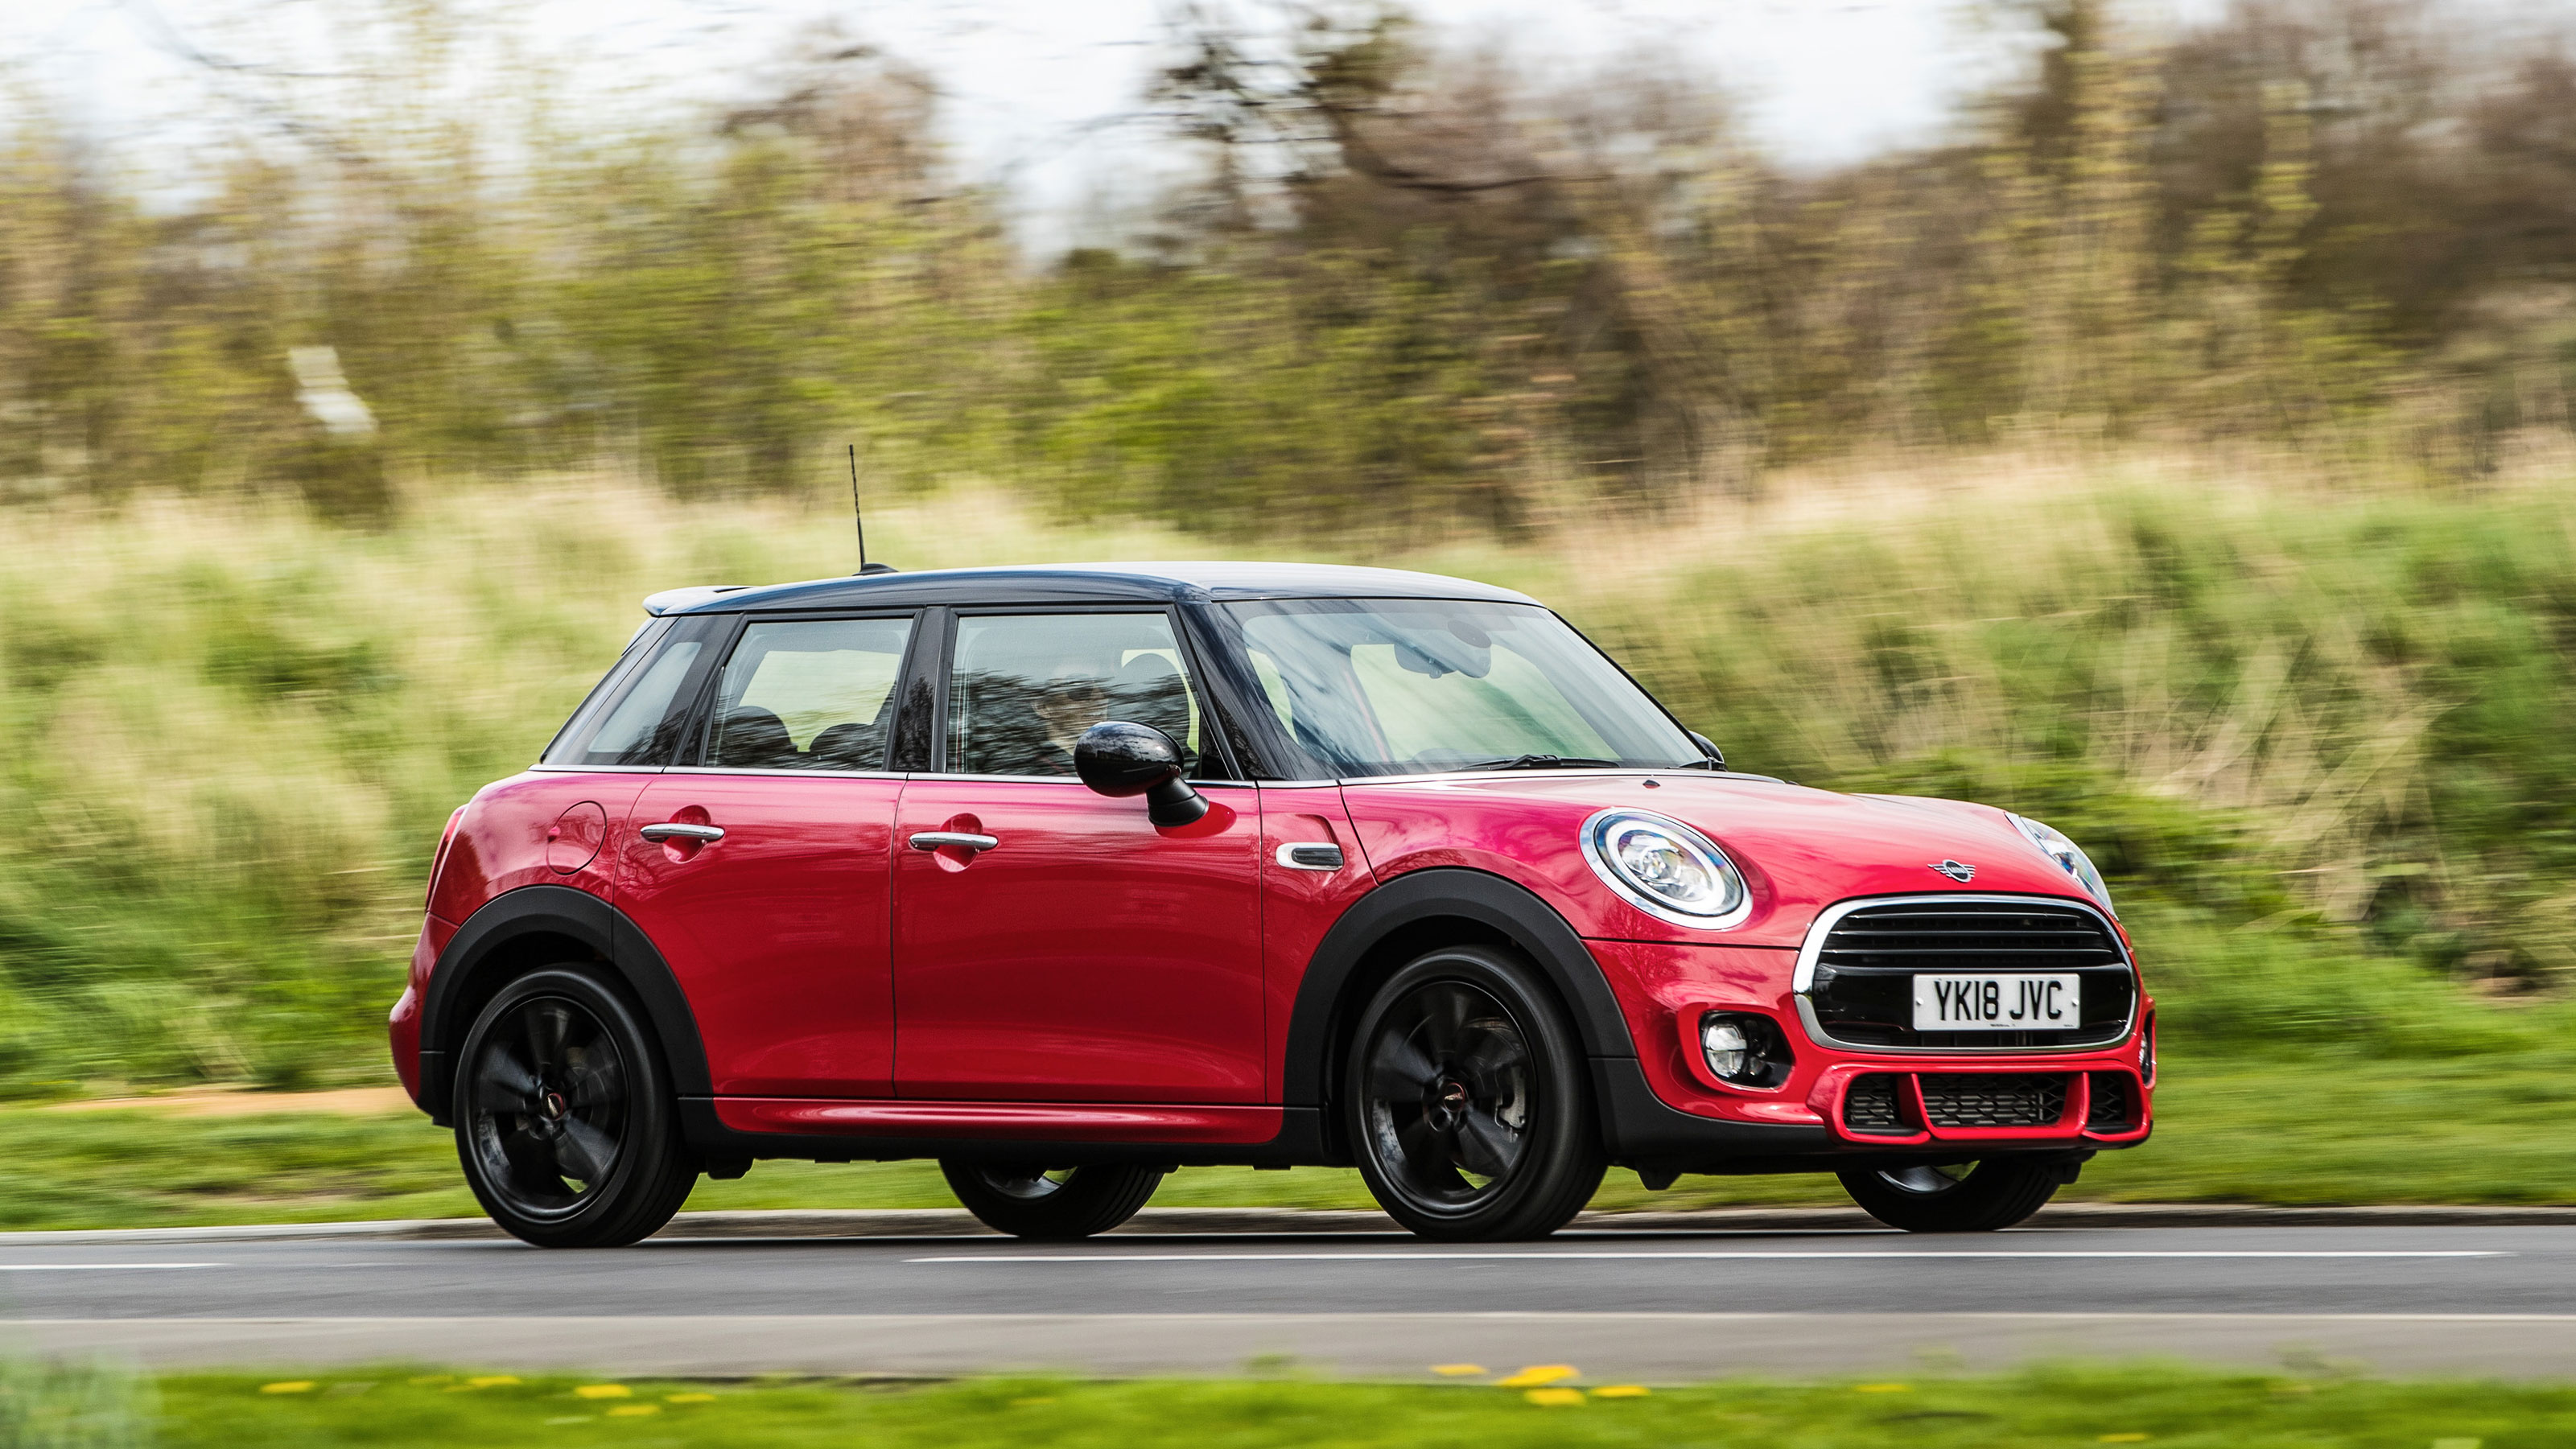 MINI Hatch Cooper S used cars for sale on Auto Trader UK